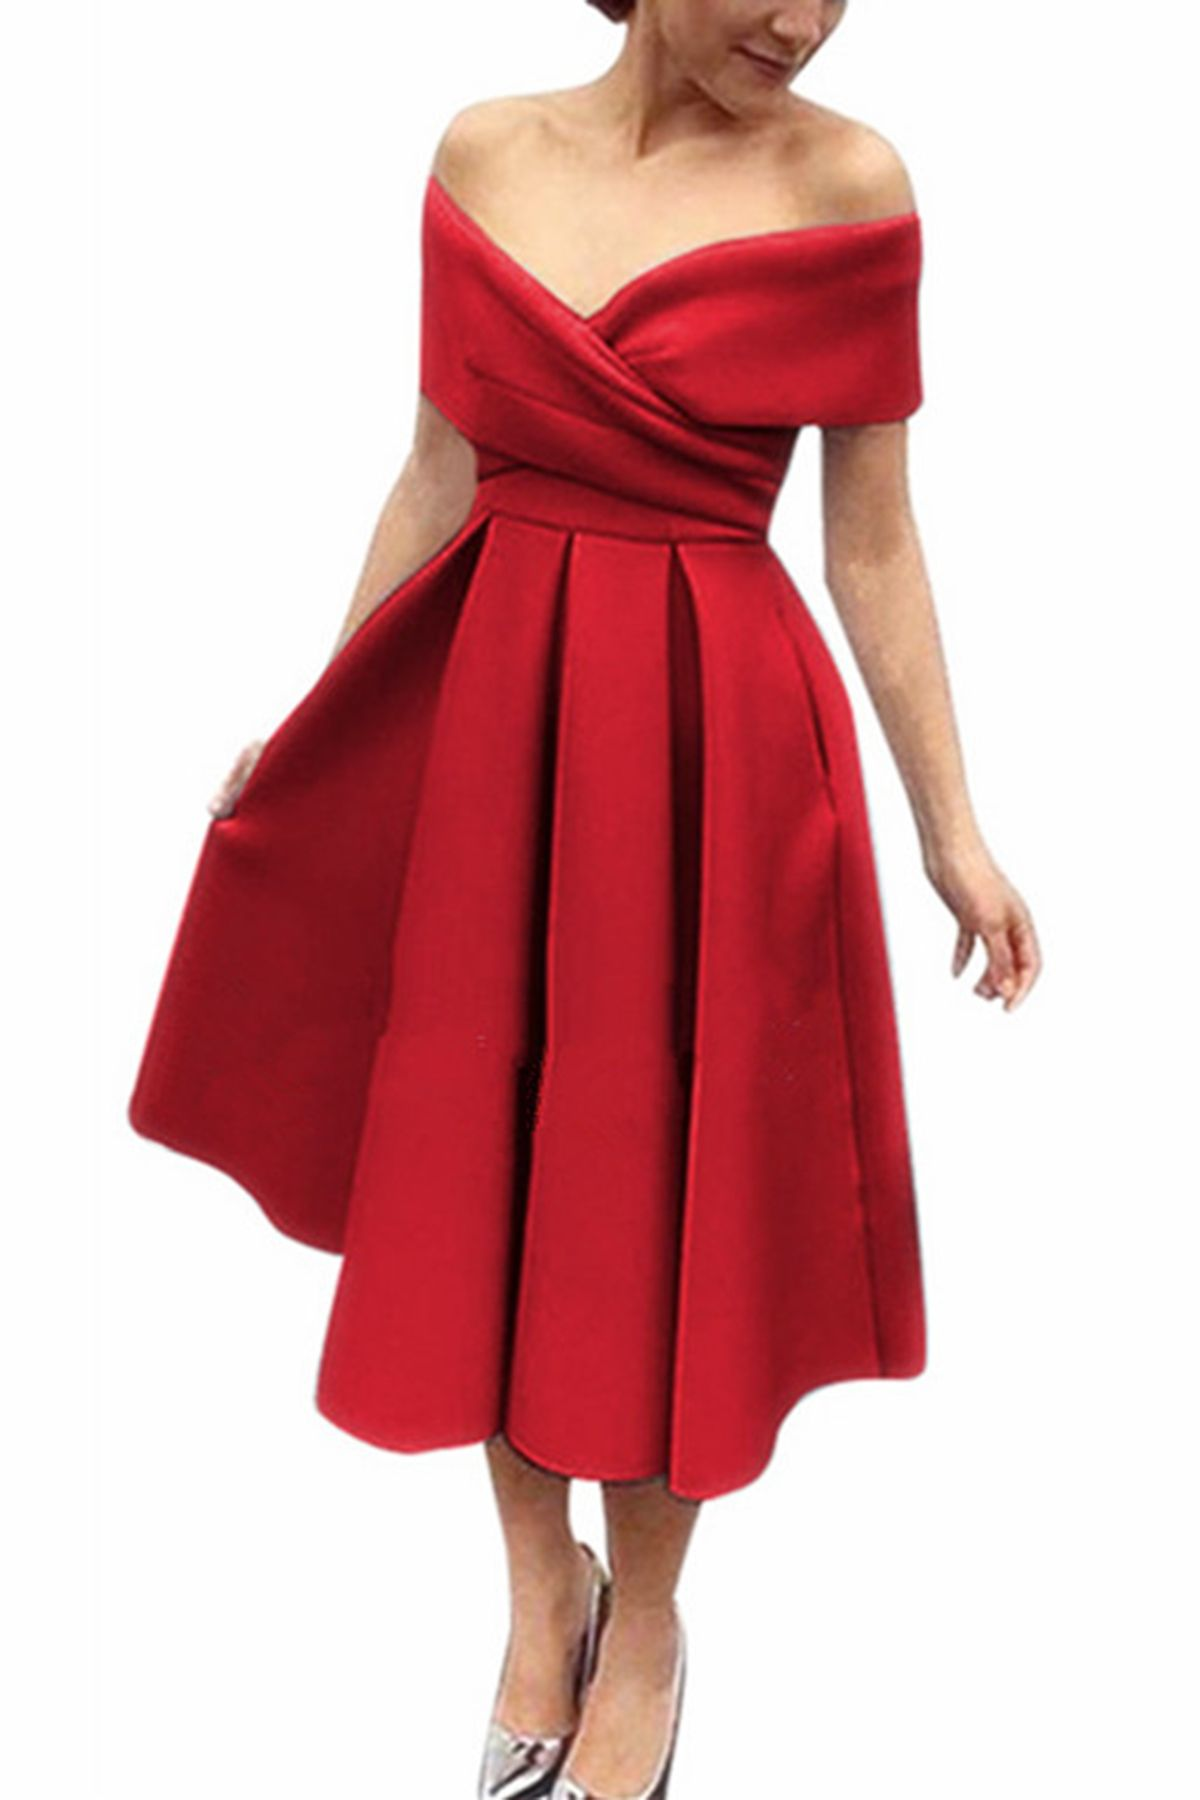 info for new design new authentic Simple red satin off shoulder V neck bridesmaid dress, short party ...